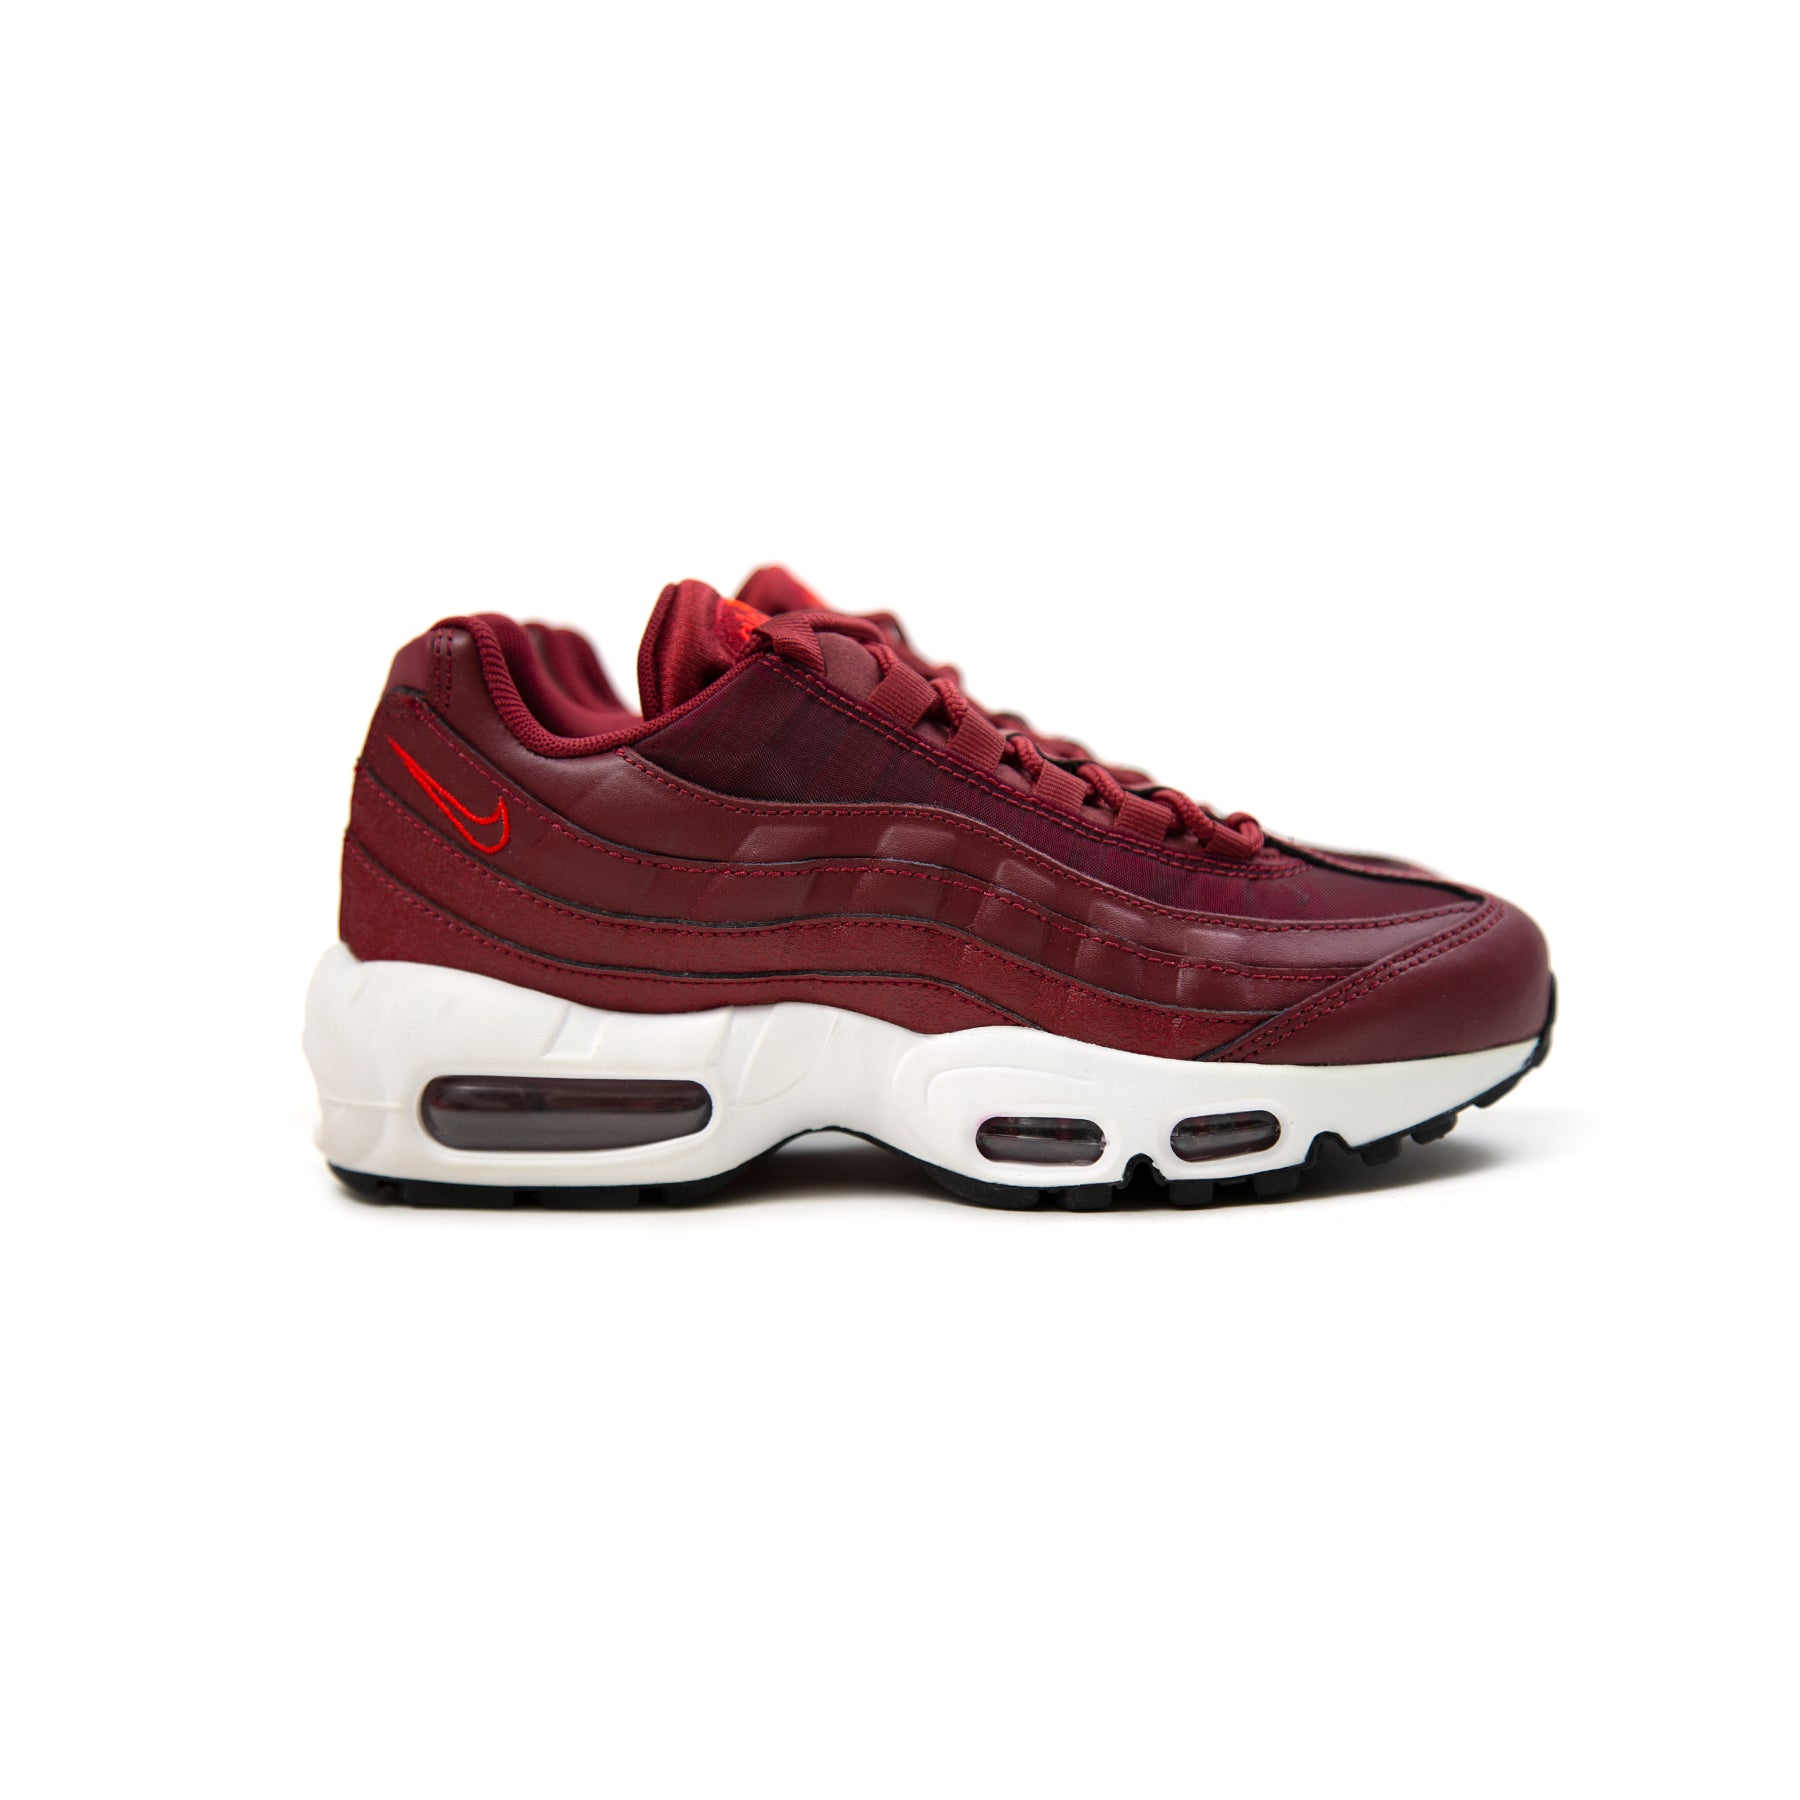 ConceptsIntl | Nike Women's Air Max 95 (Team RedTeam Red Black)